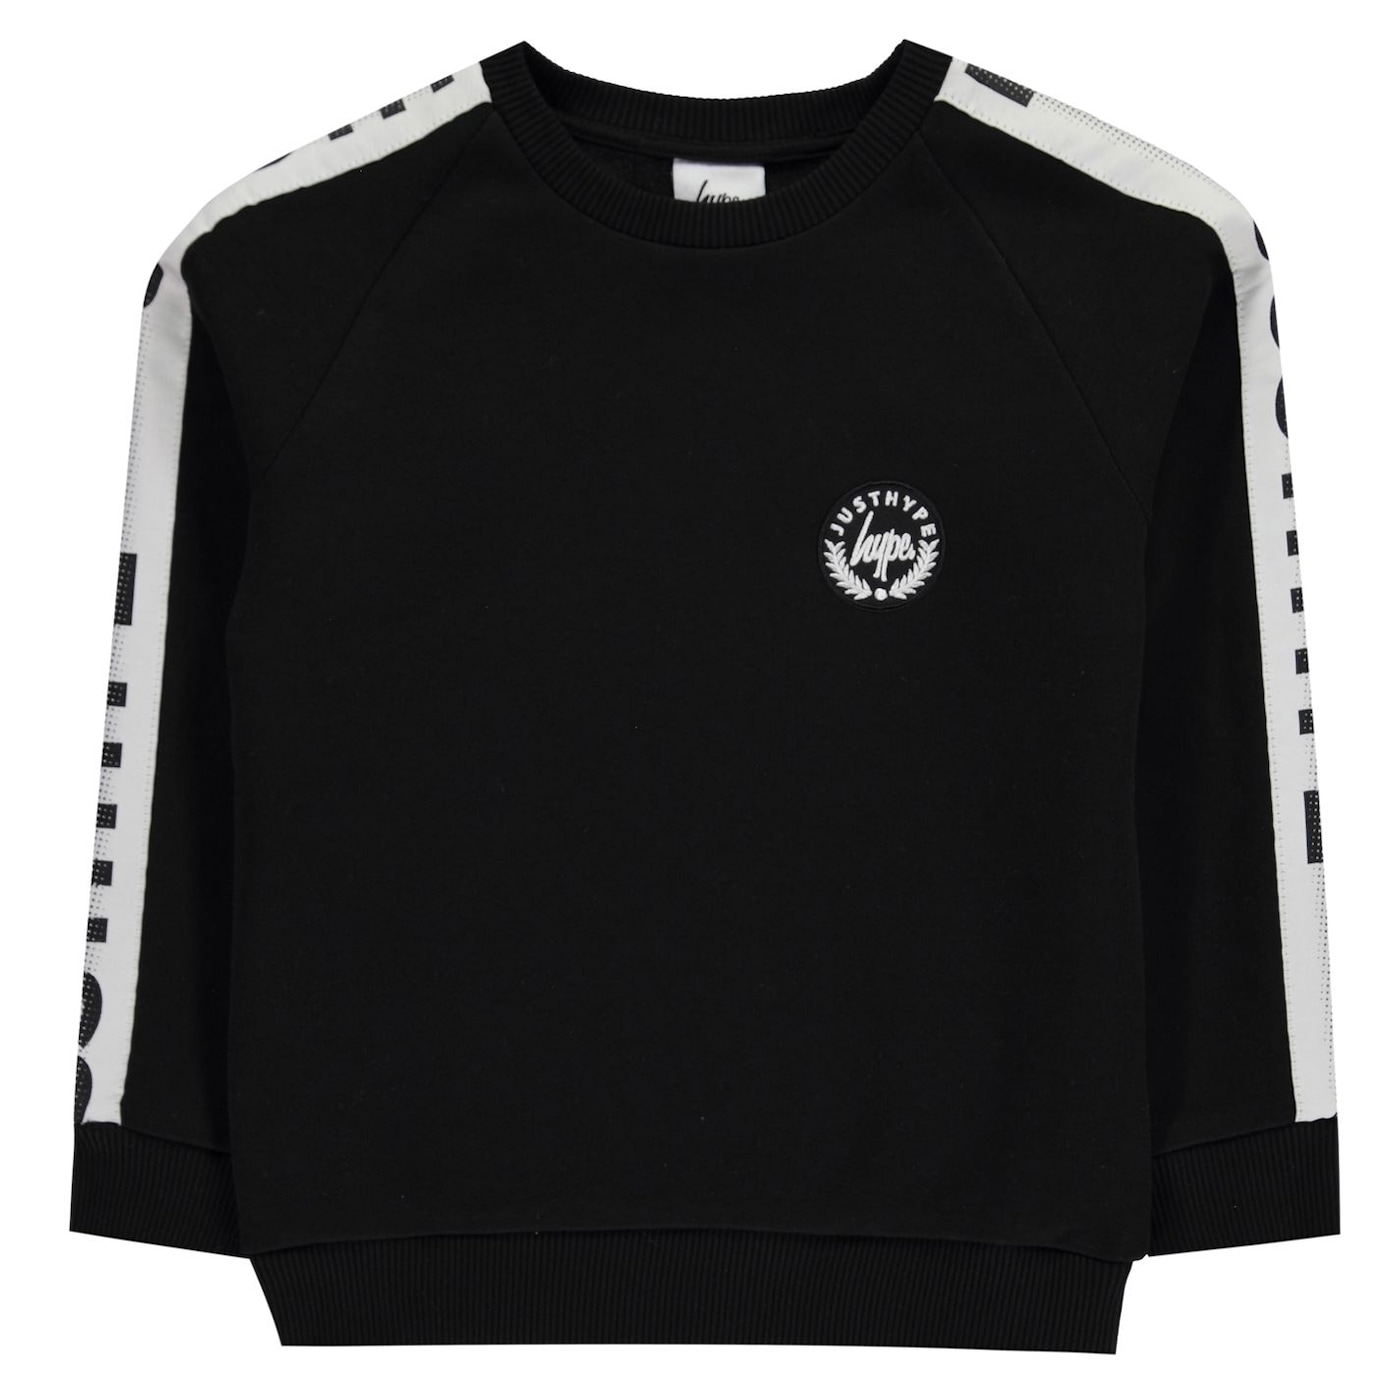 Hype Speckle Tape Sweatshirt